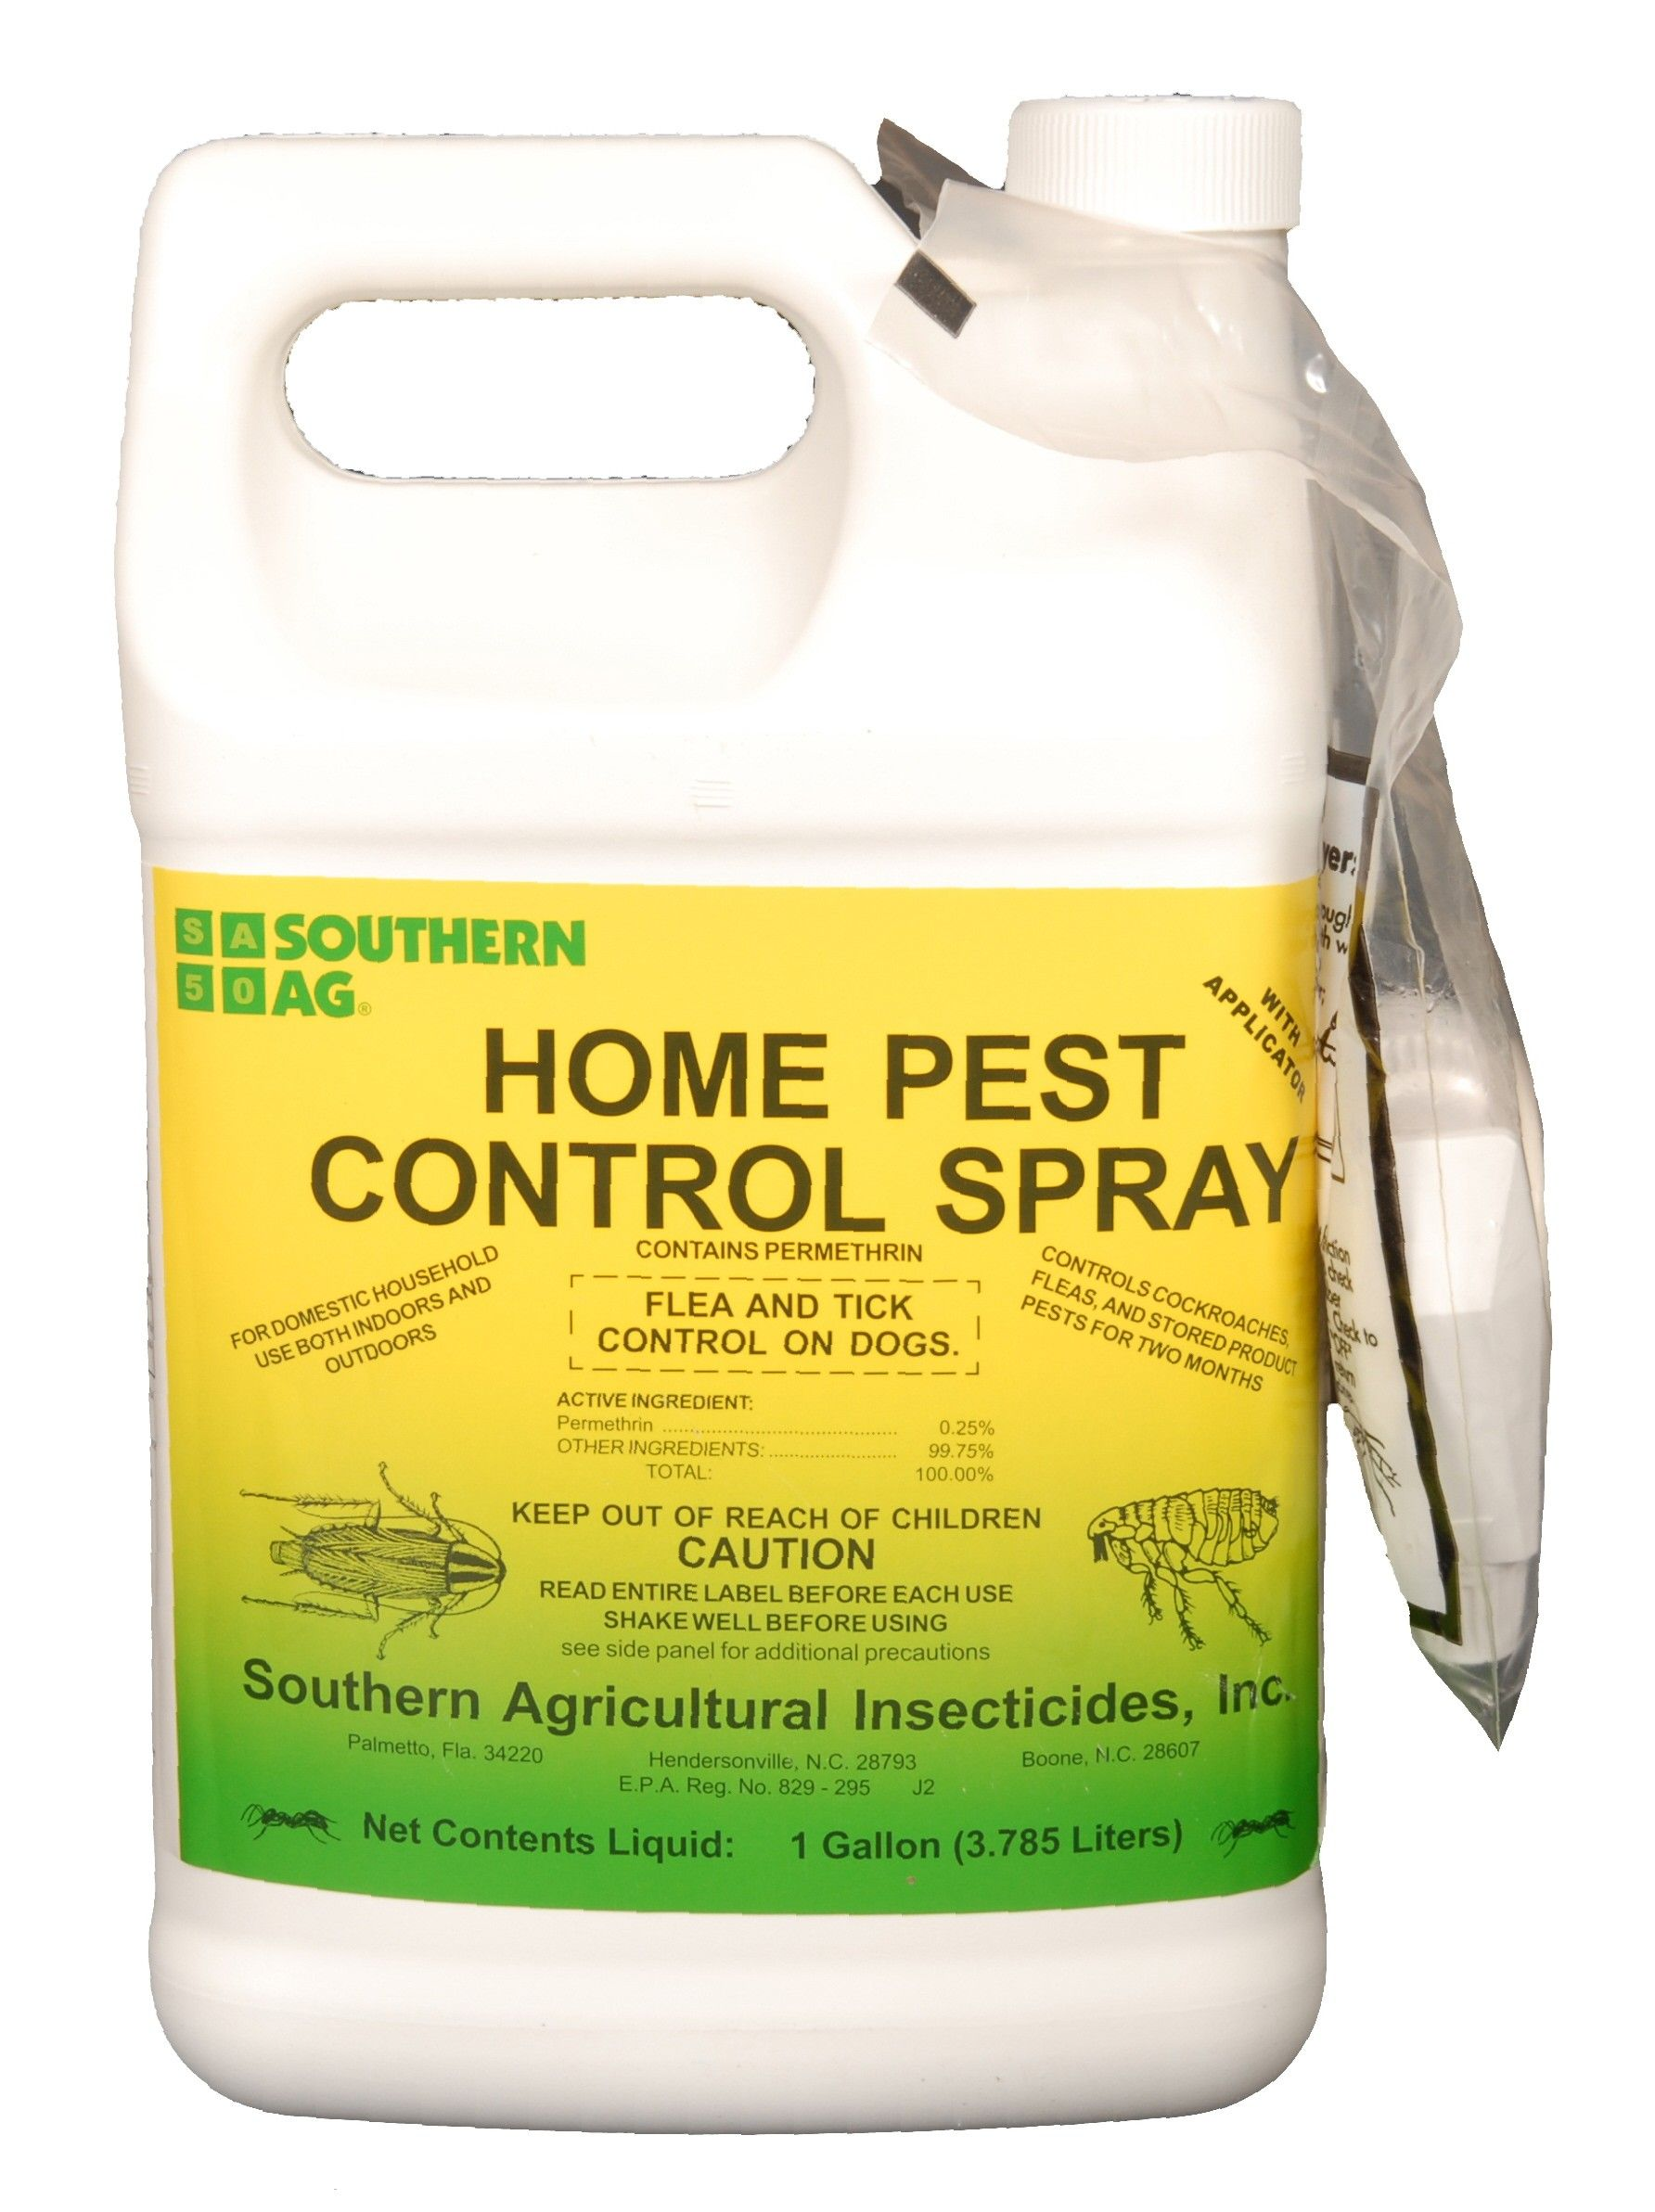 Commercial Pest Control Products Pest control, Garden